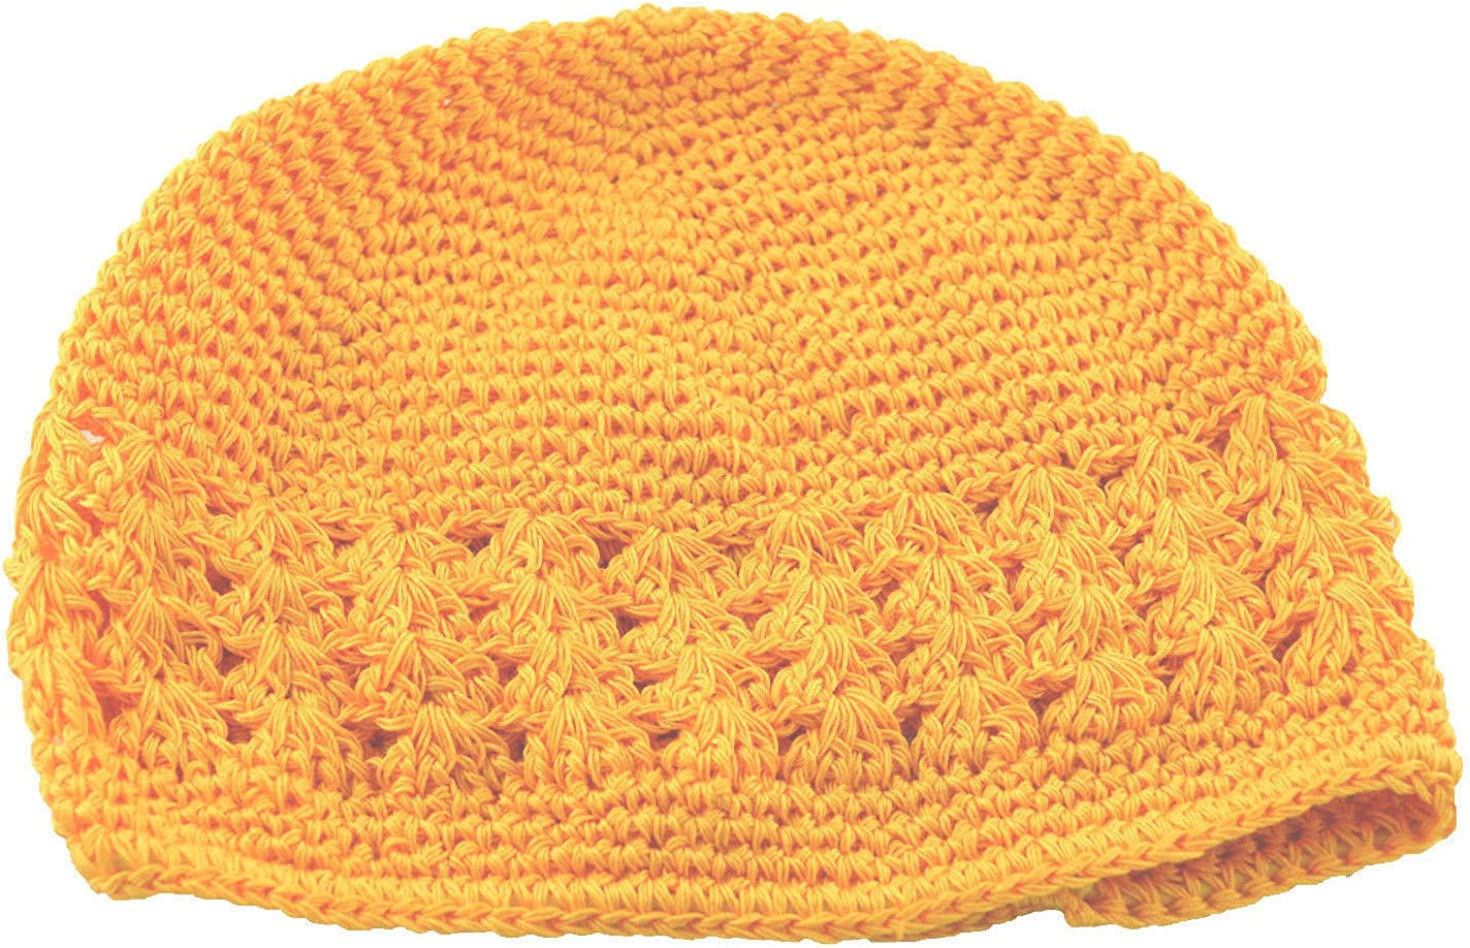 MM Kufi Hat Crochet Yellow We OFFer at cheap Lowest price challenge prices Beanie Gold Cap